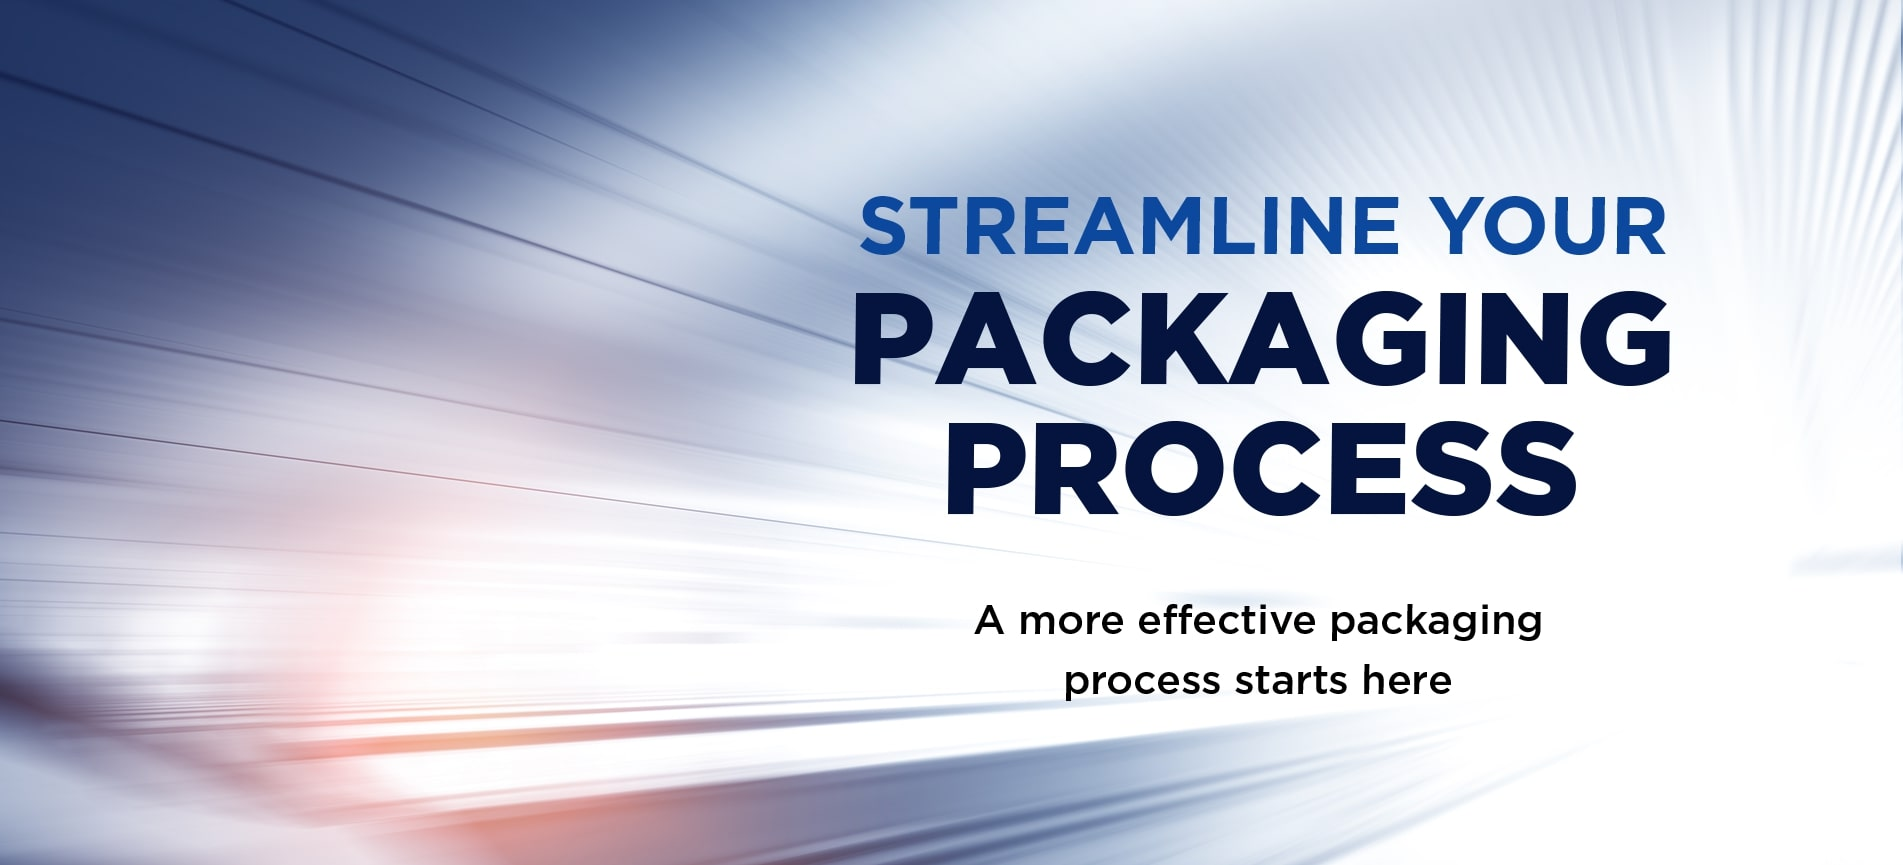 Streamline Your Packaging Process